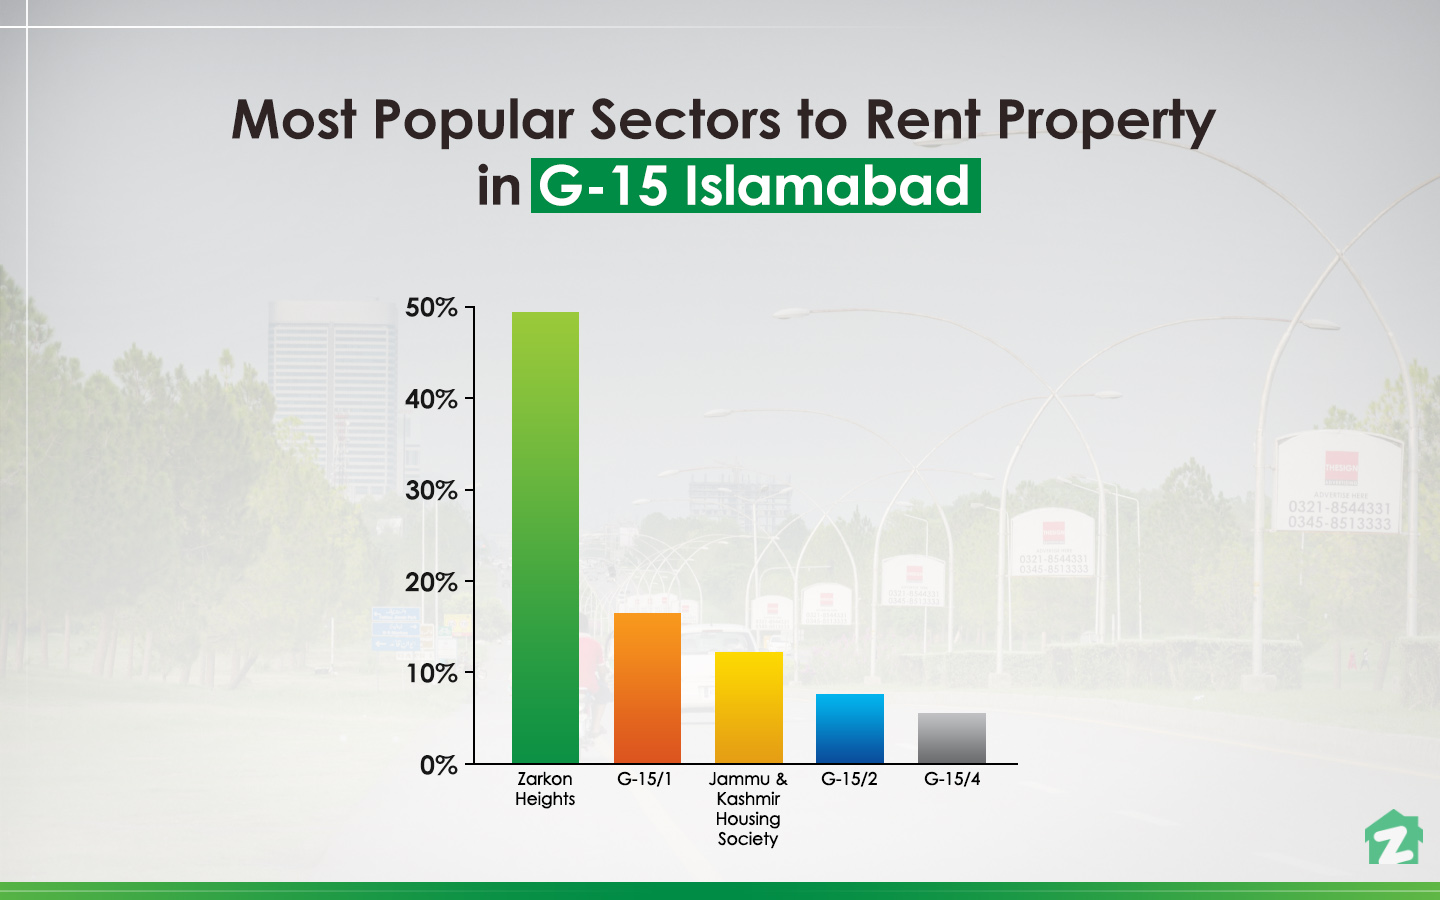 When it comes to rental trends, people have shown interest in Zarkon Heights, G-15, Islamabad